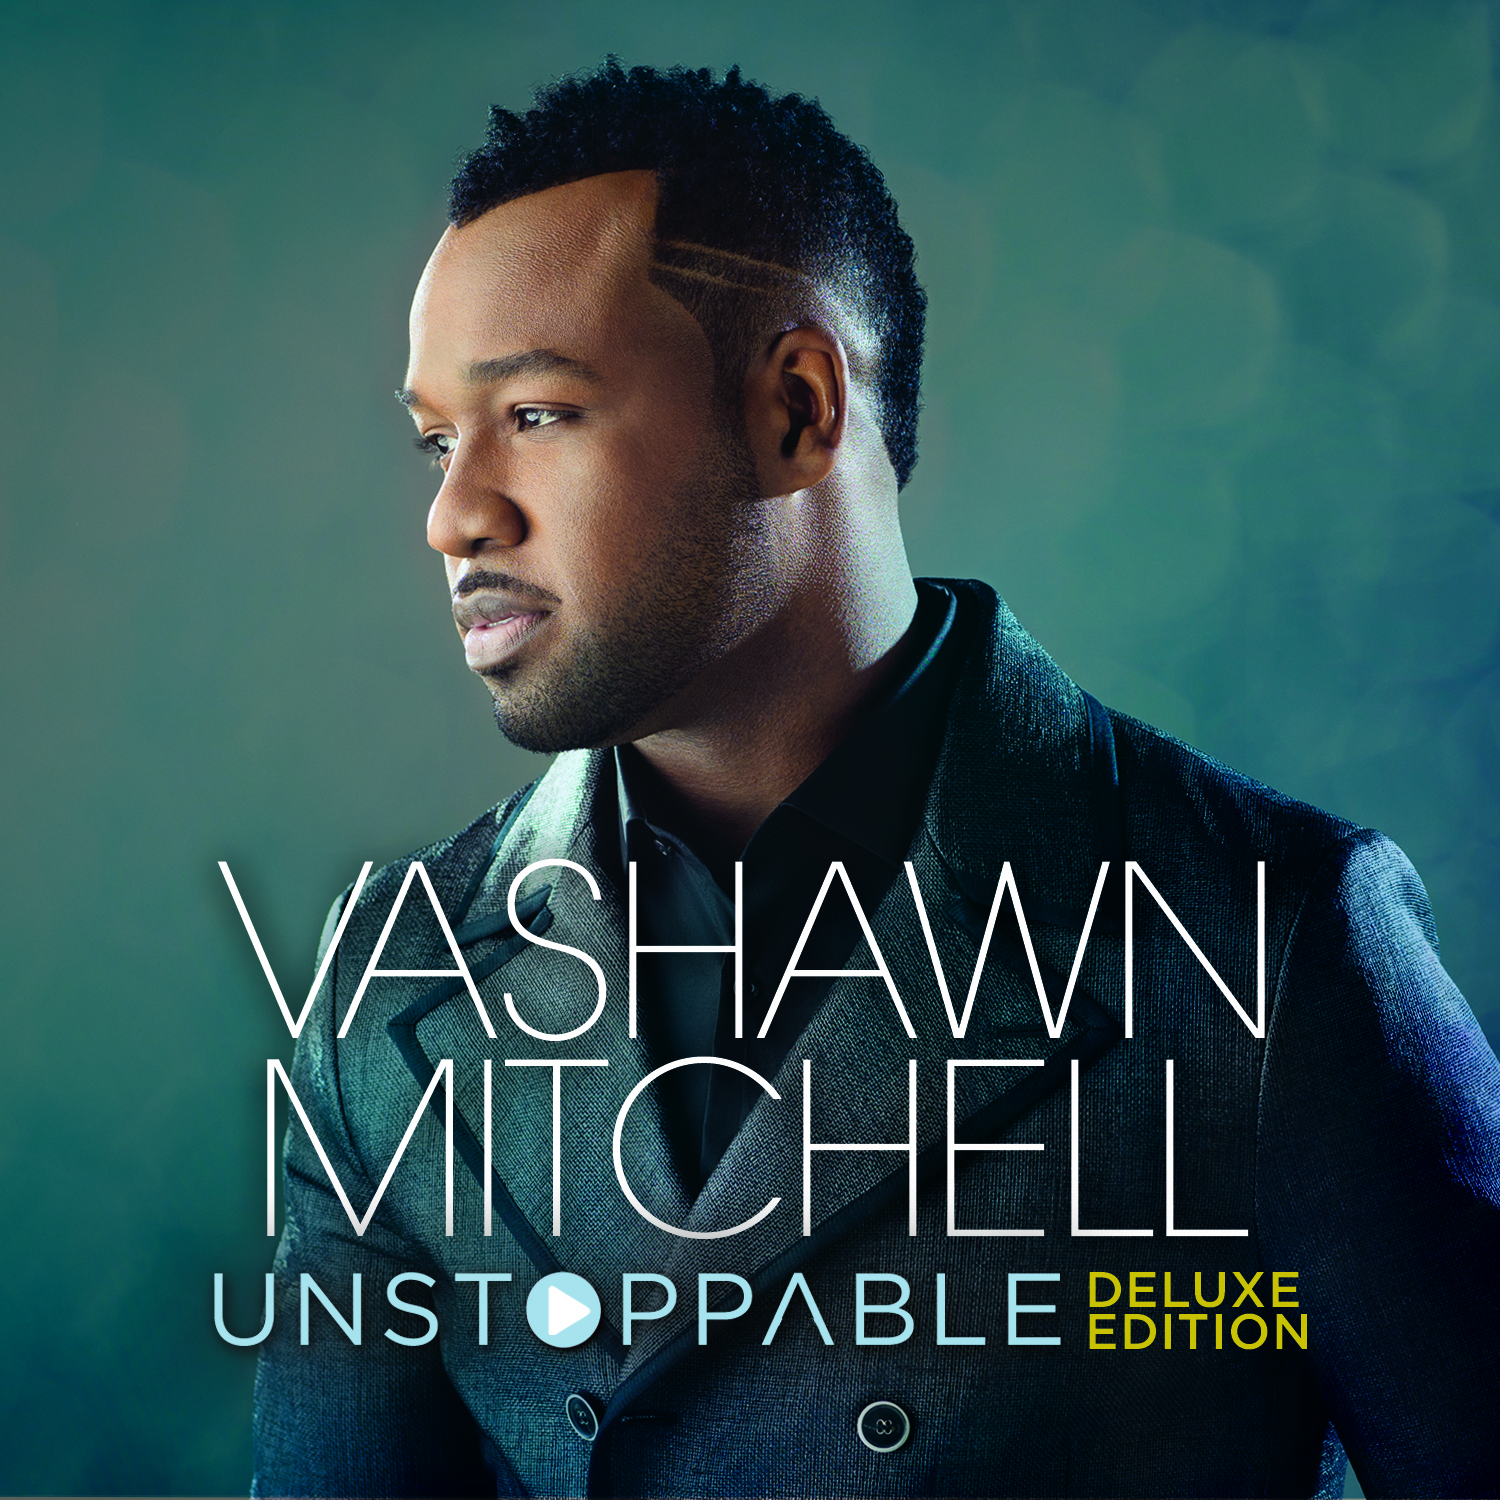 Vashawn Mitchell Gets Unstoppable Bonnerfide Radio Awesome in all your ways and mighty in your hand. bonnerfide radio